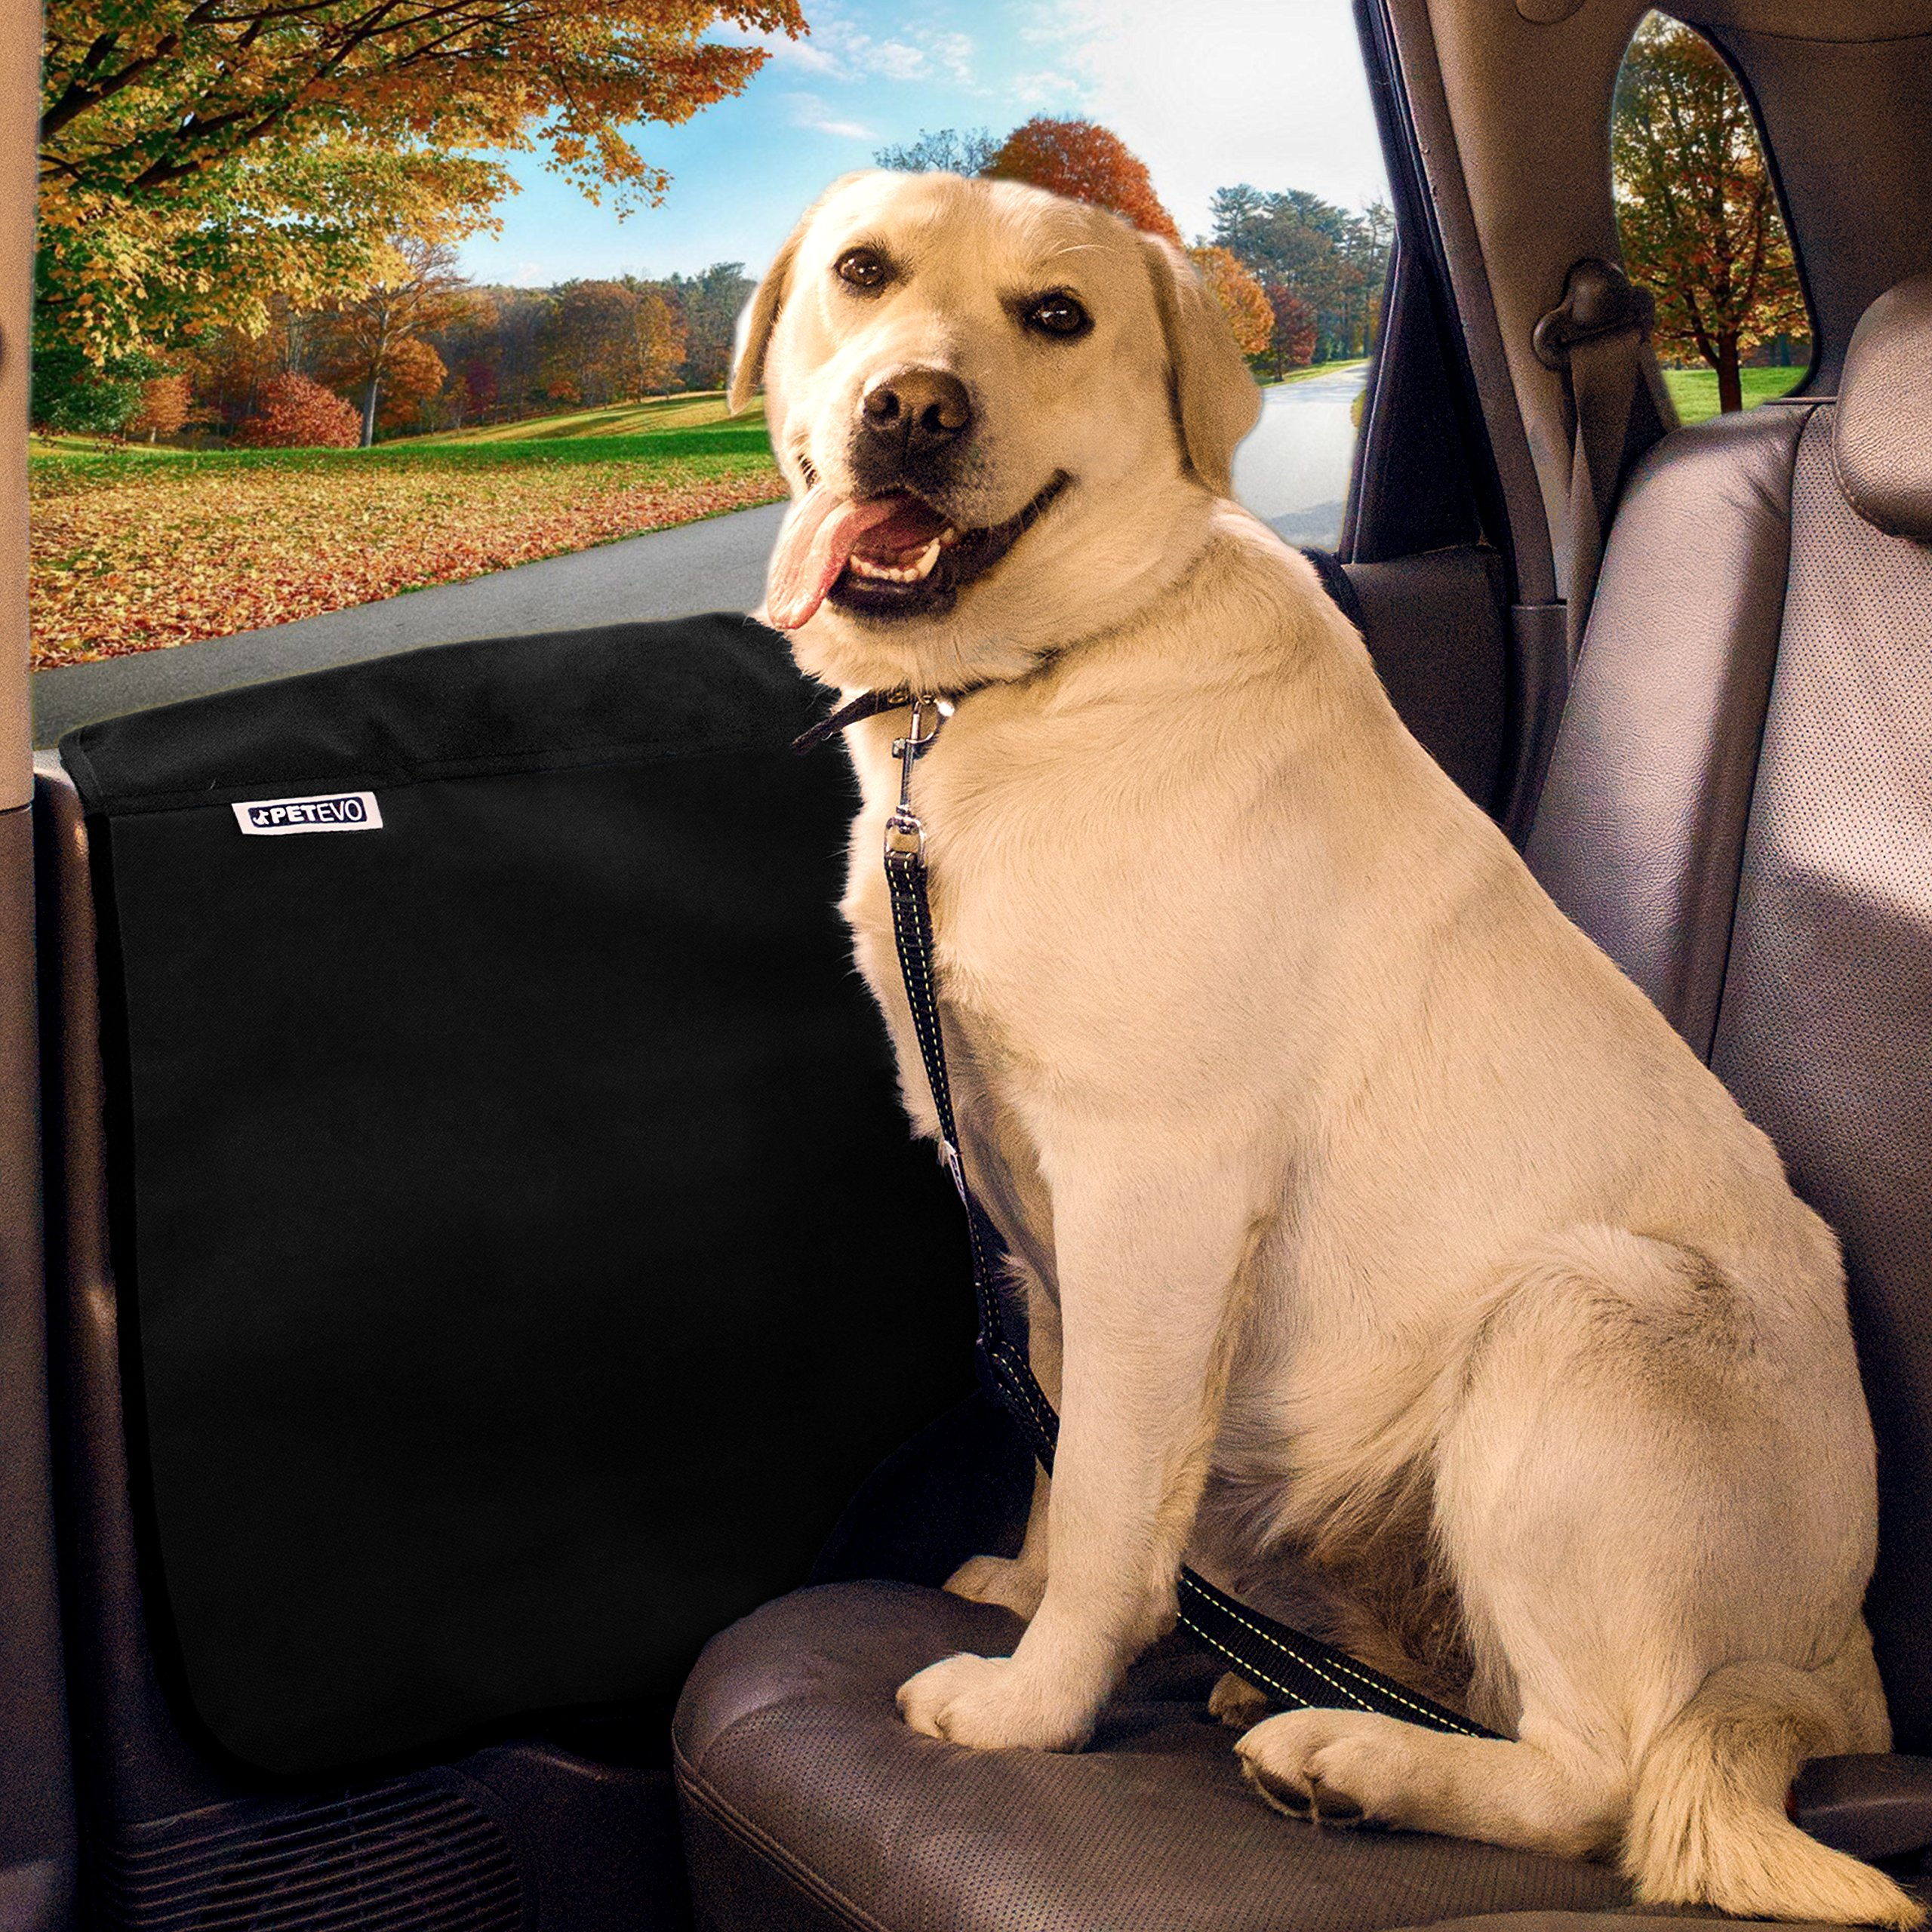 Pet Car Door Protector for Dogs   Interior Cover Guard Vehicle Back Door Protection from Pets Scratch Drooling Nails Large Safe No Slip Velcro Stick for Side Doors PetEvo by PetEvo (Image #8)